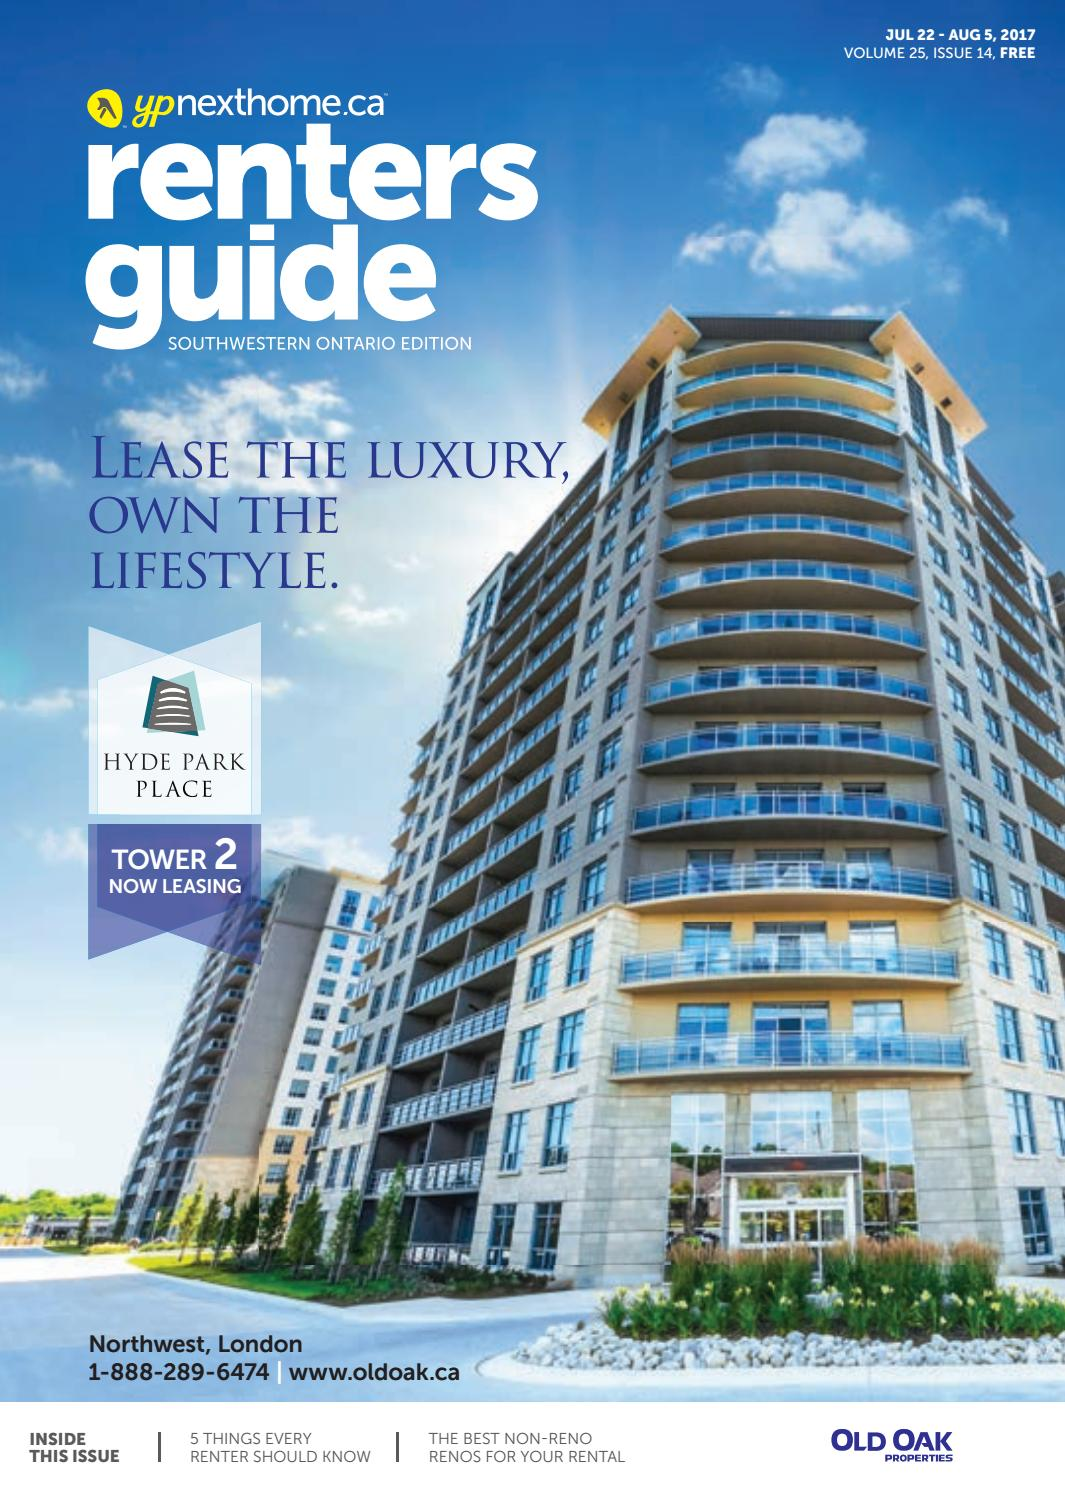 South Western Ontario Renters Guide - 22 Jul, 2017 by NextHome - issuu